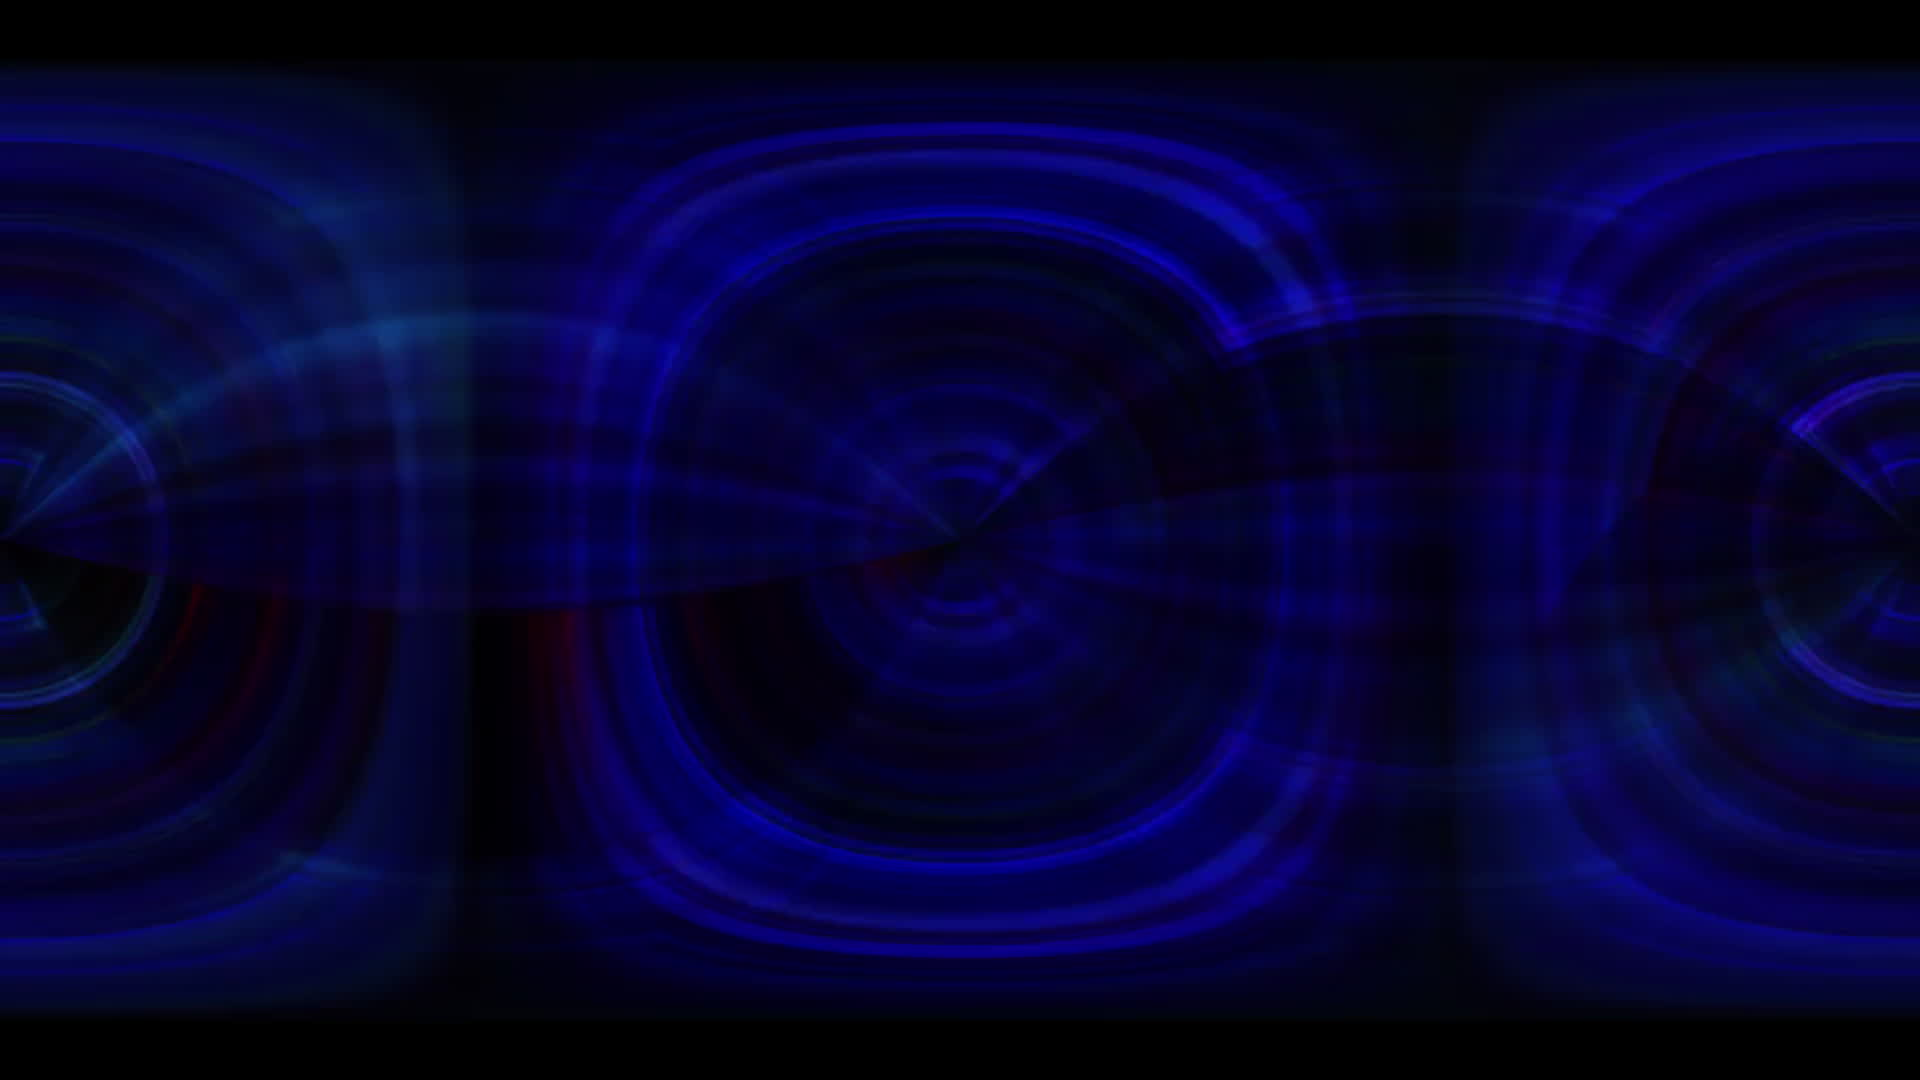 360 VR Video Background 3603: Virtual reality video light abstraction (Loop). Designed to be used in Oculus Rift, Samsung Gear VR and other virtual reality displays.